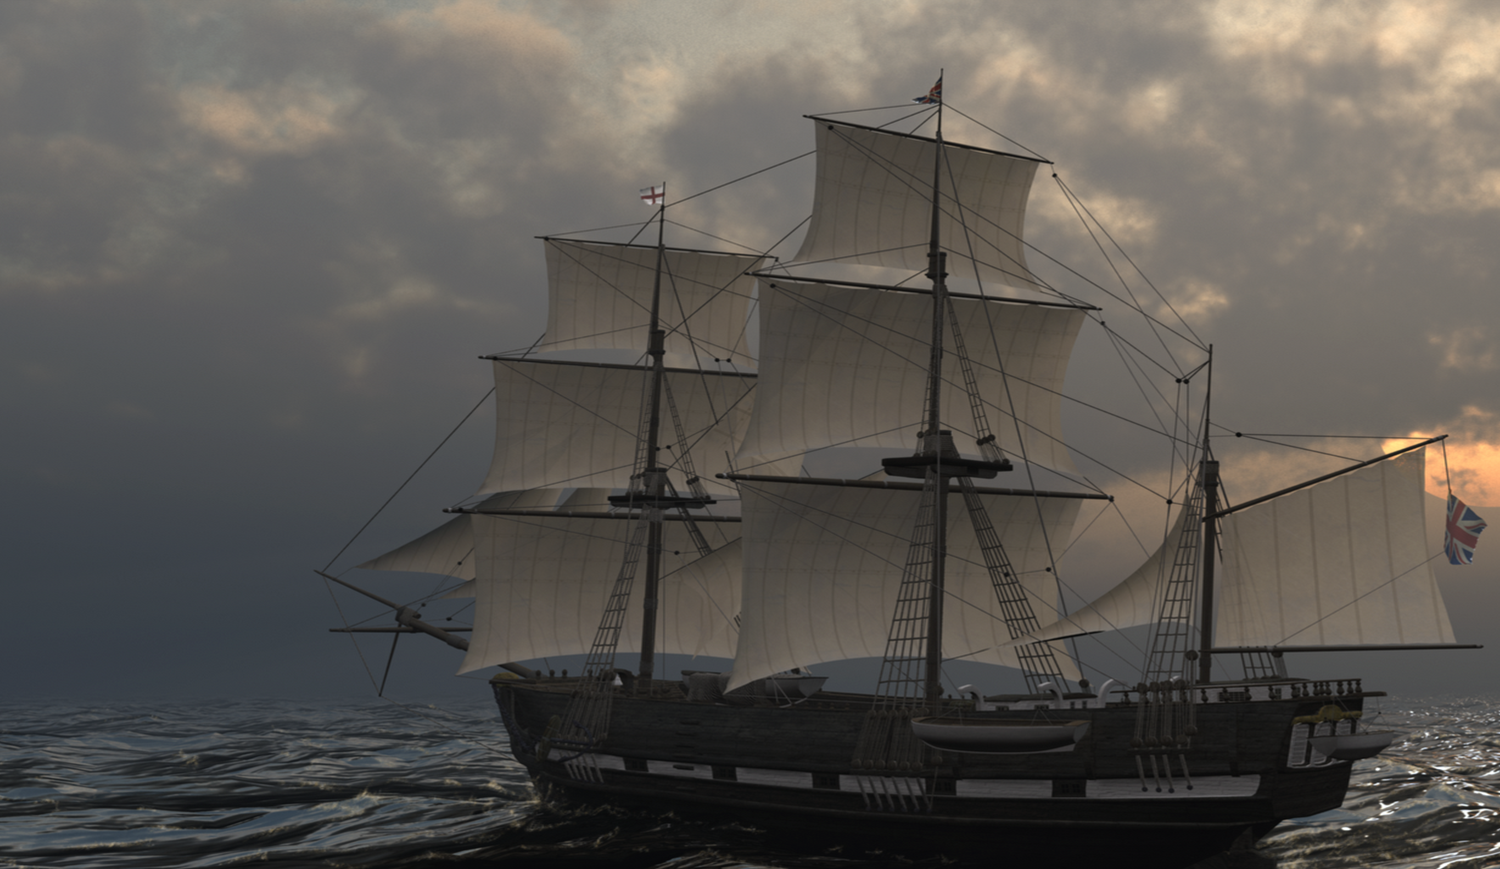 Discover 2020: 200 Years of HMS Beagle